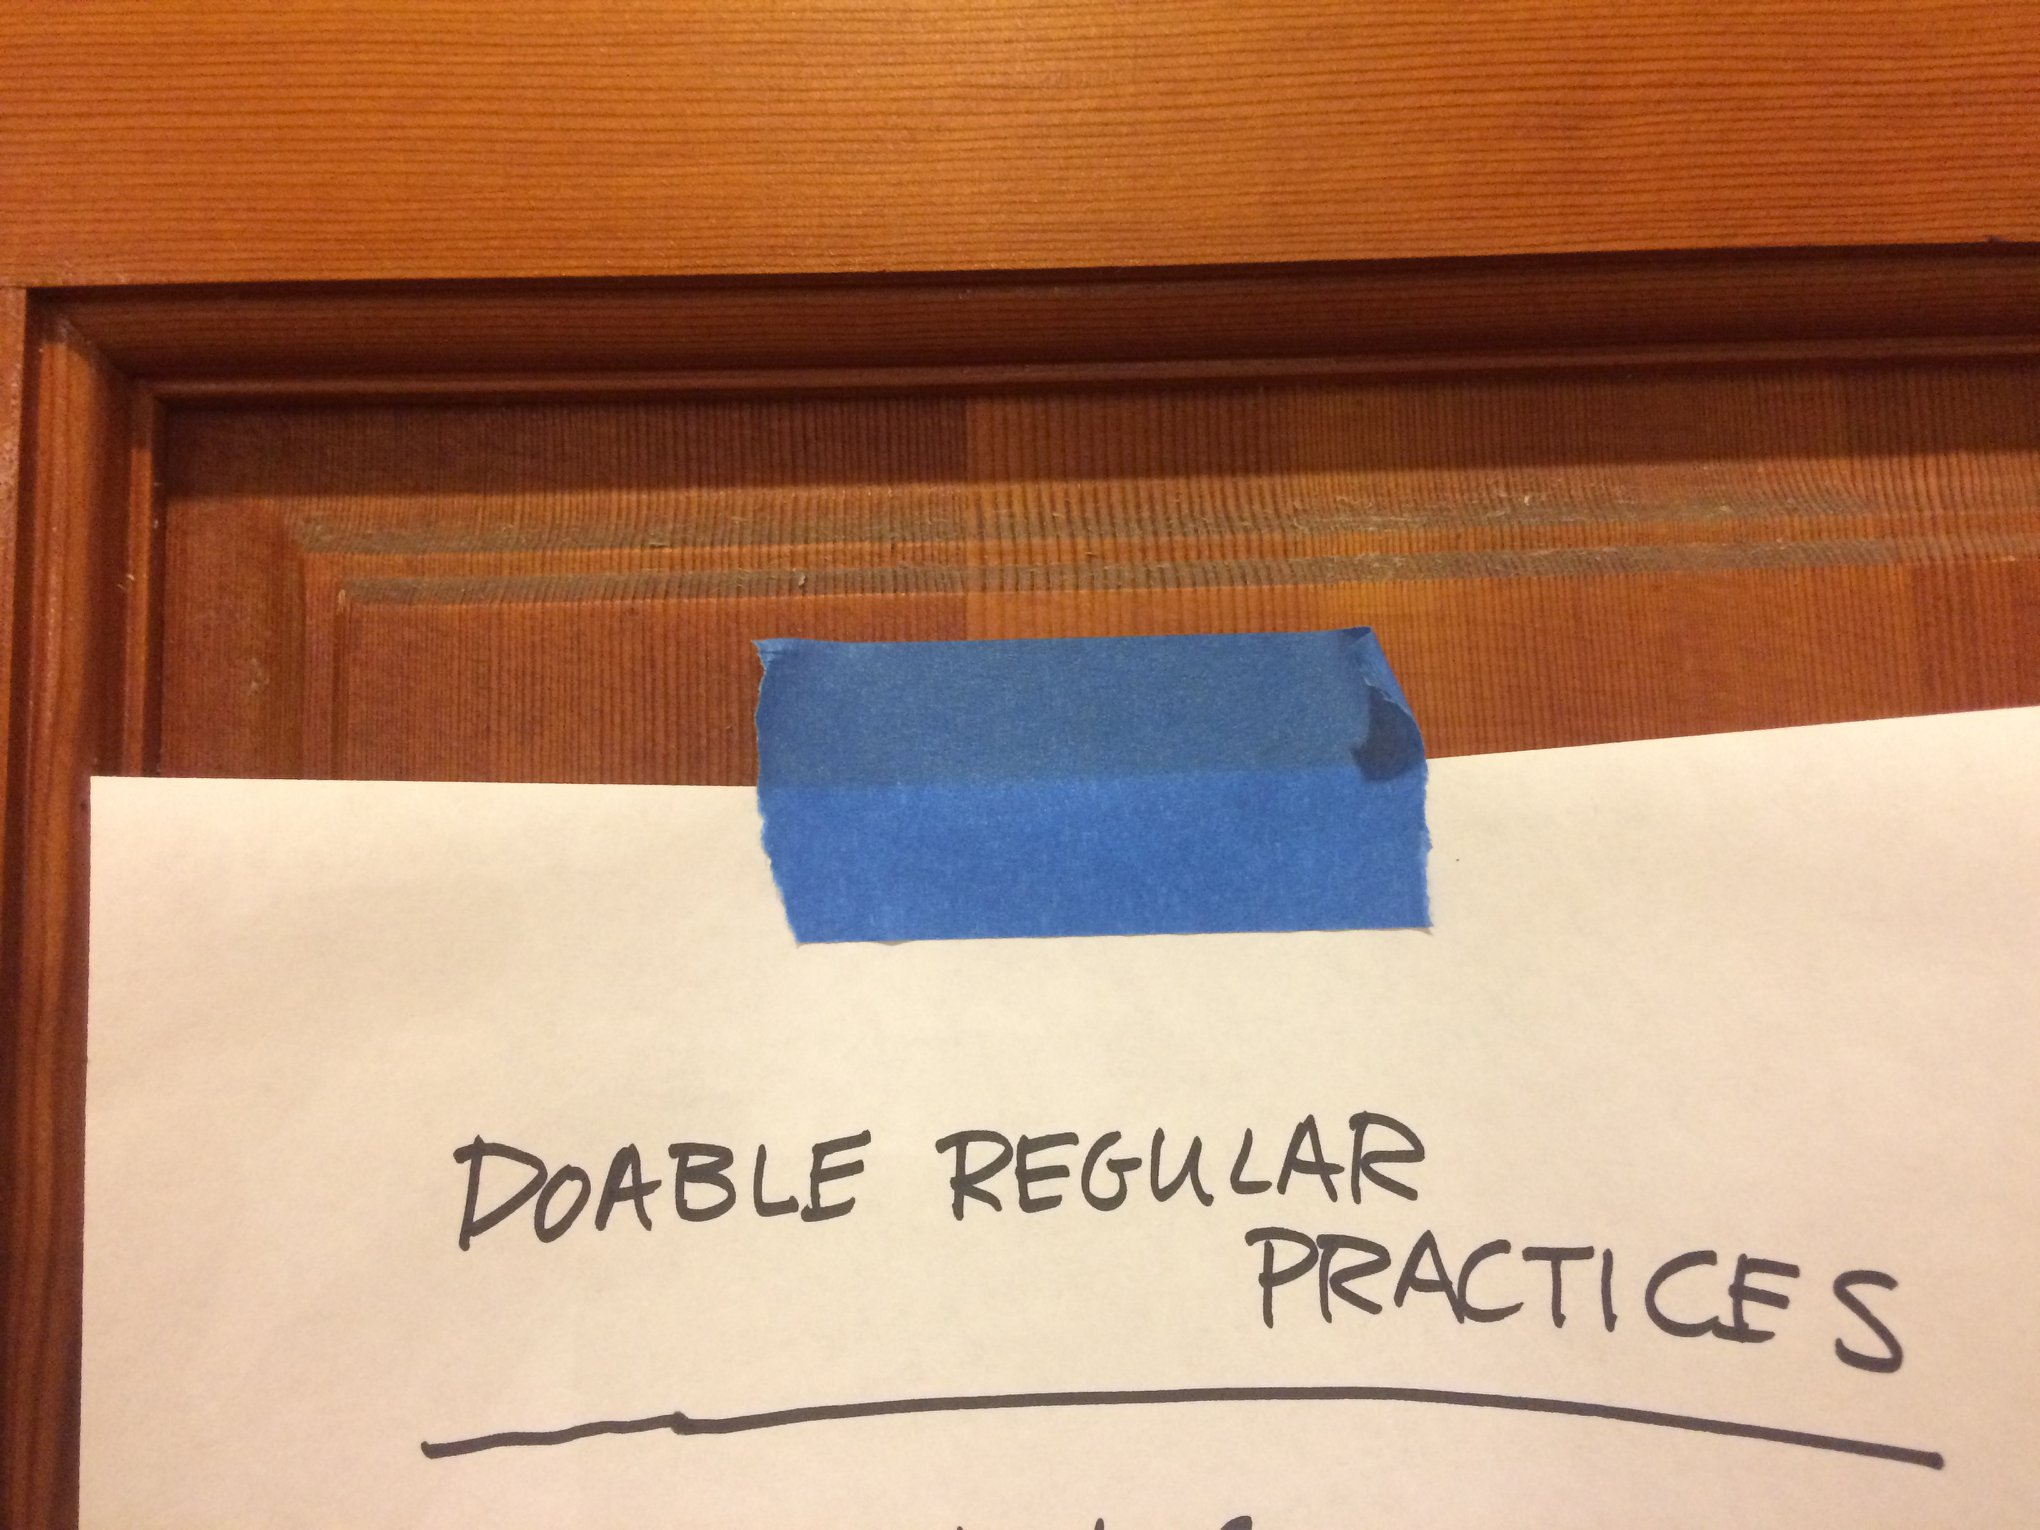 Doable Regular Practices